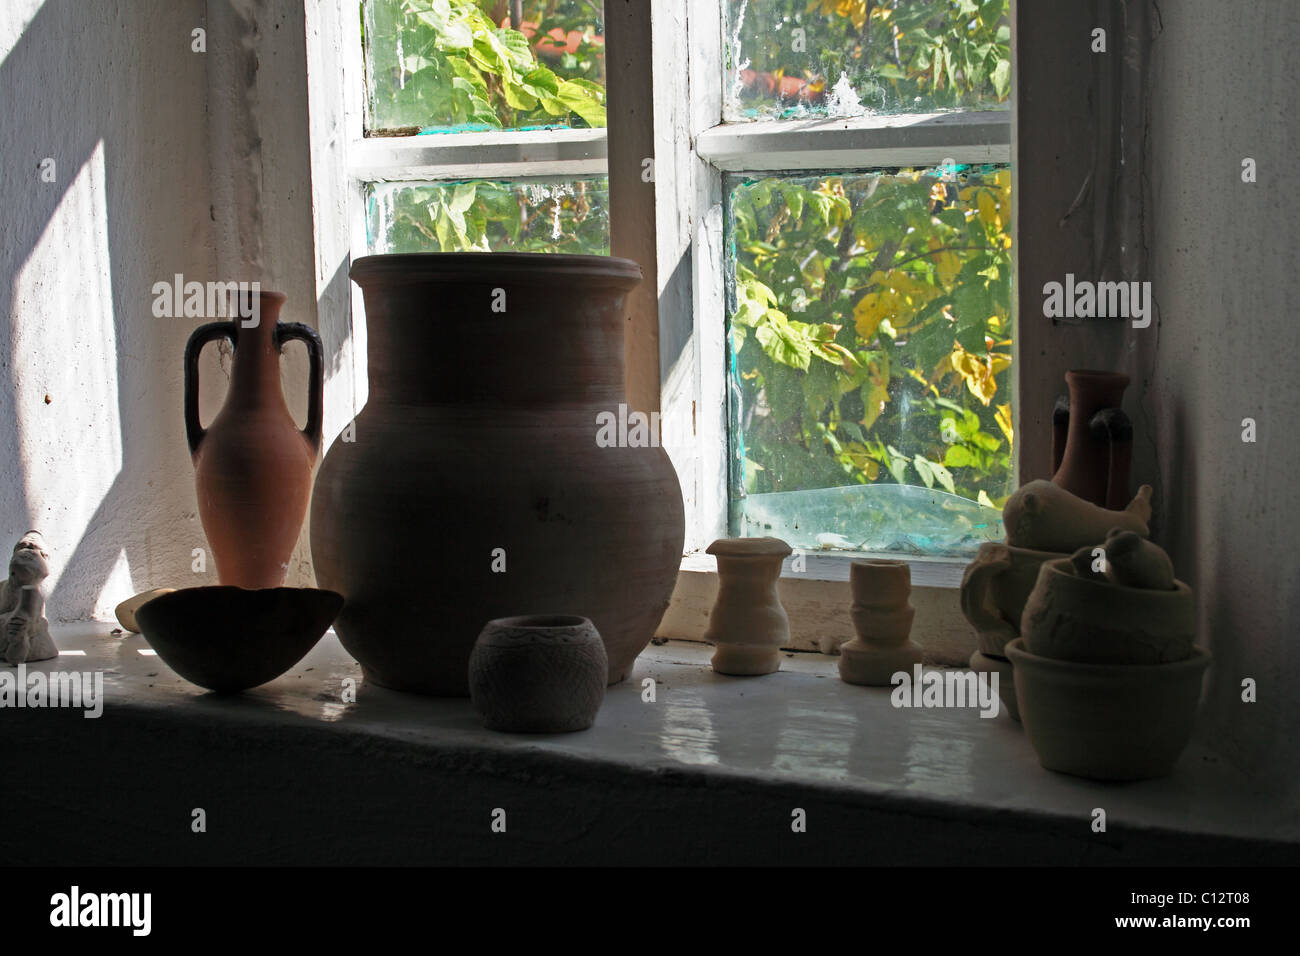 window in ukranian house - Stock Image